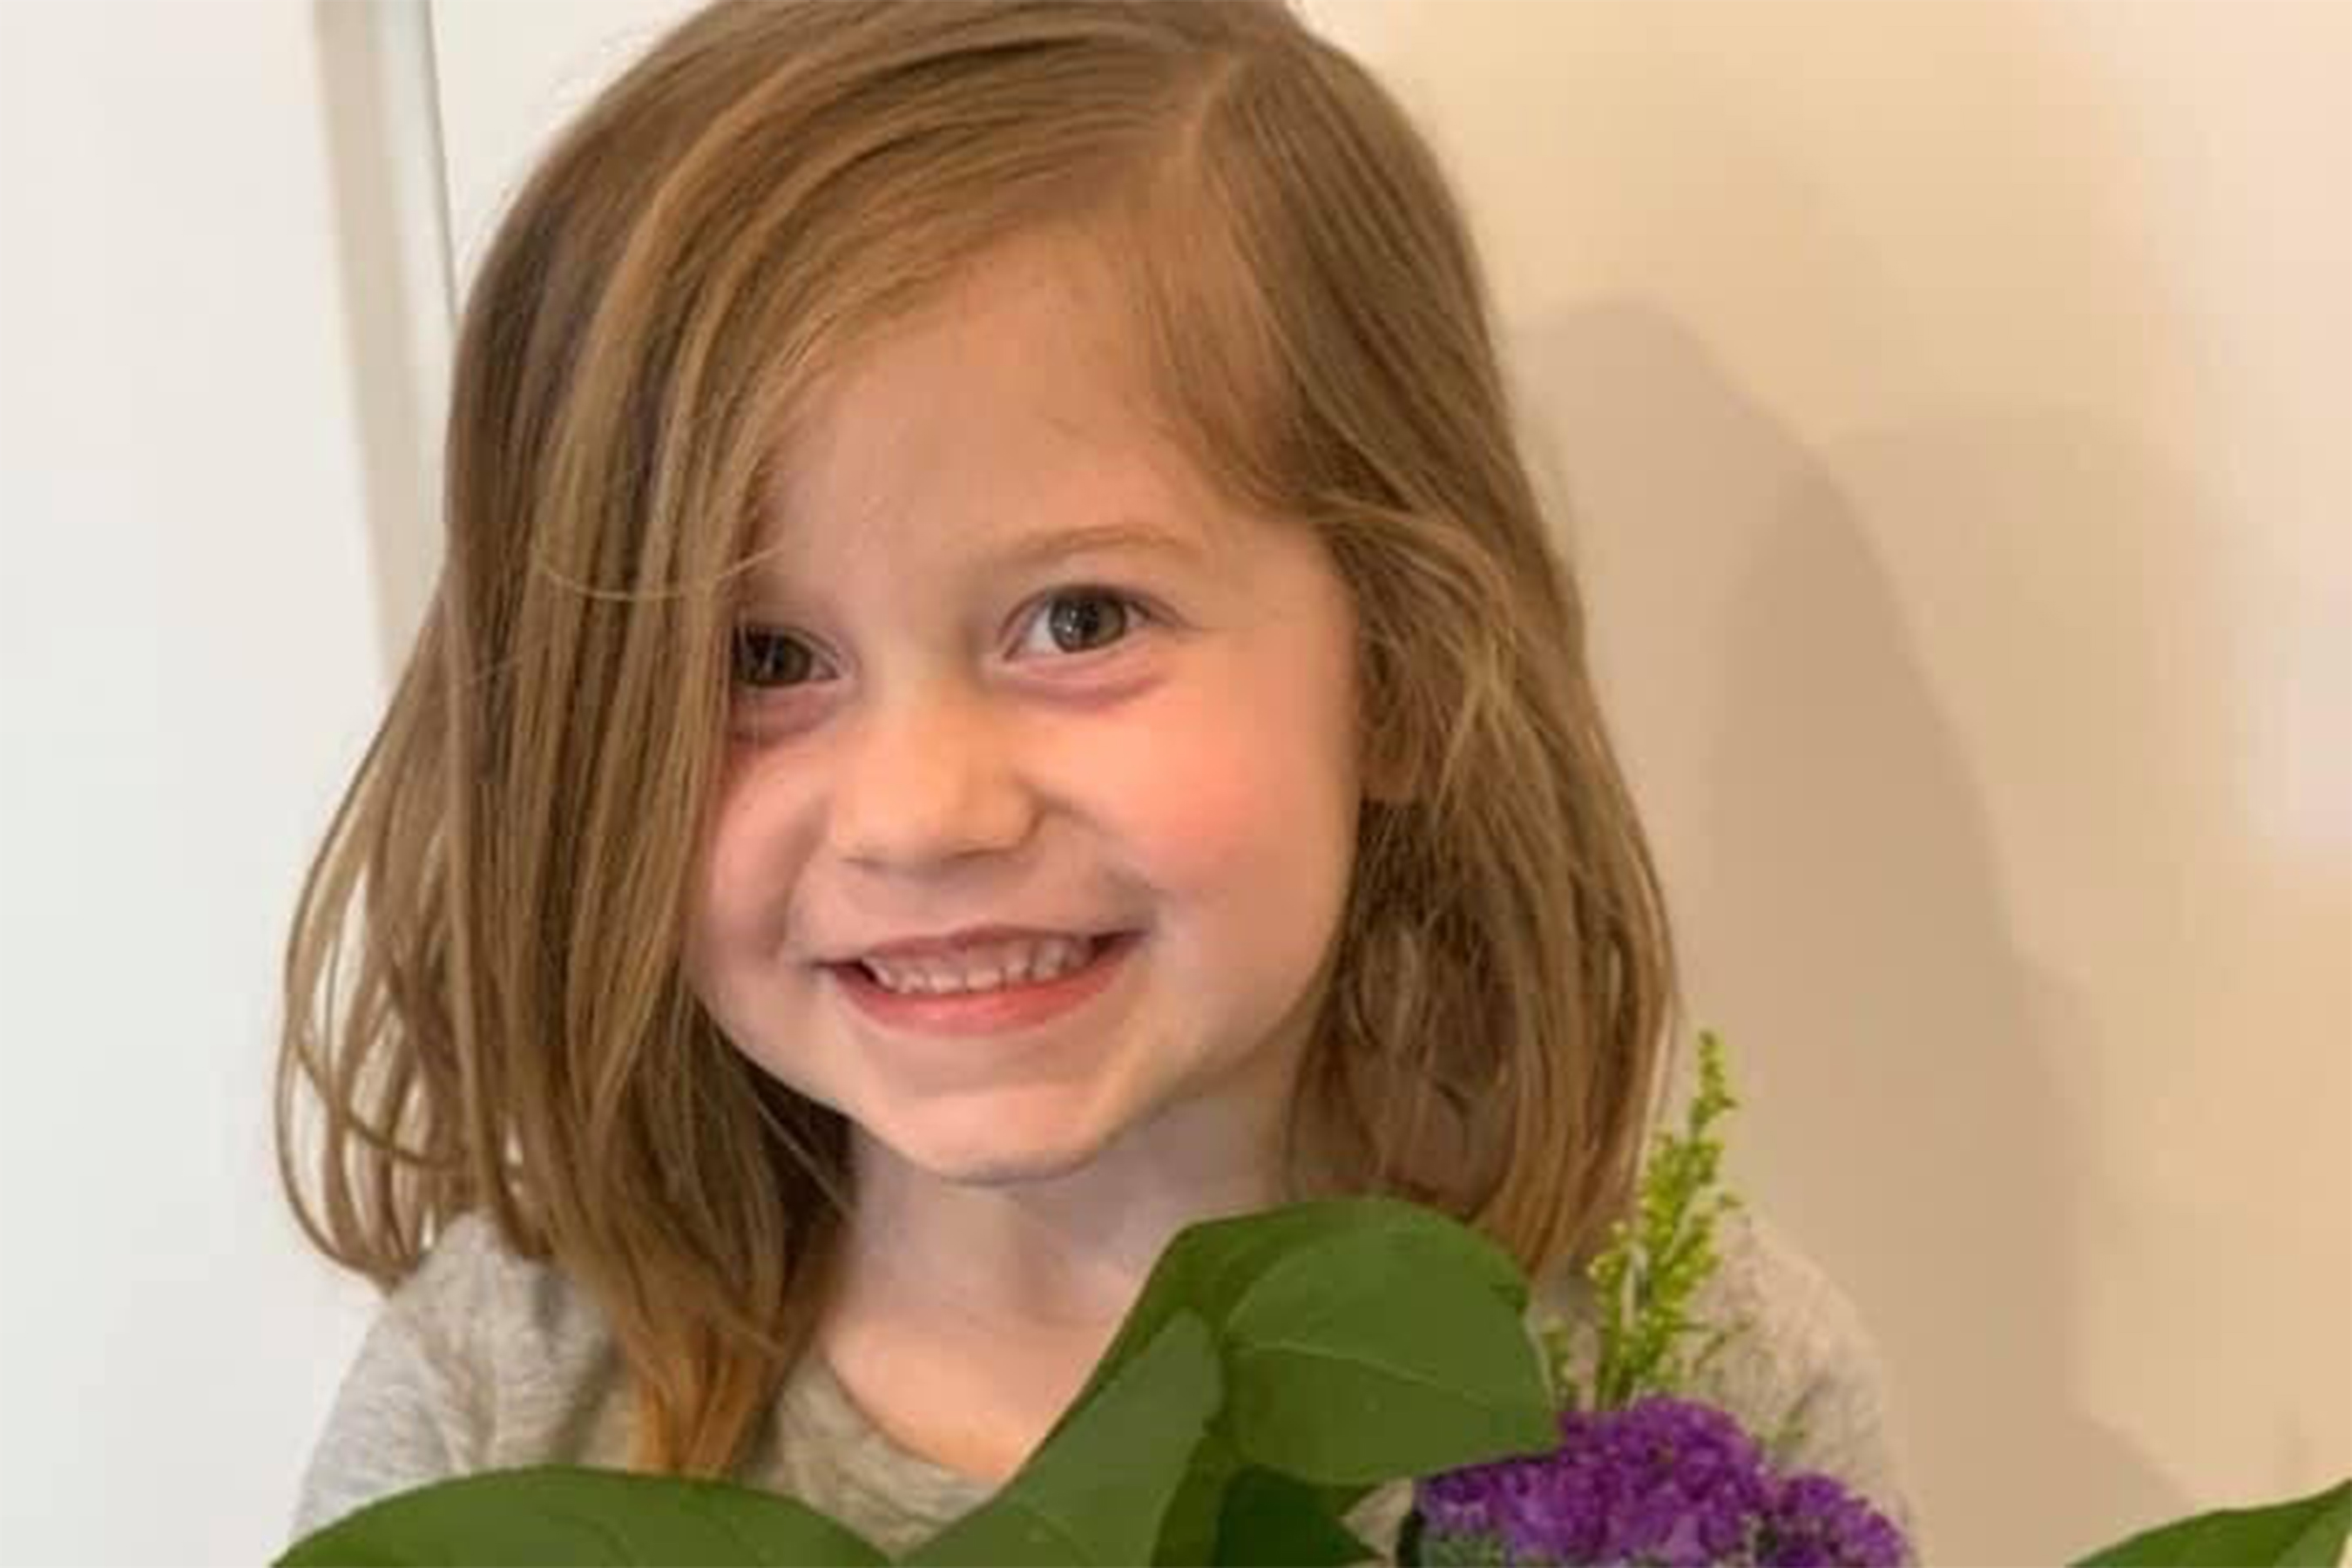 Girl, 6, Dies After Dad's Golf Ball Accidentally Hits Her in the Head: She Was His 'Golfing Buddy'